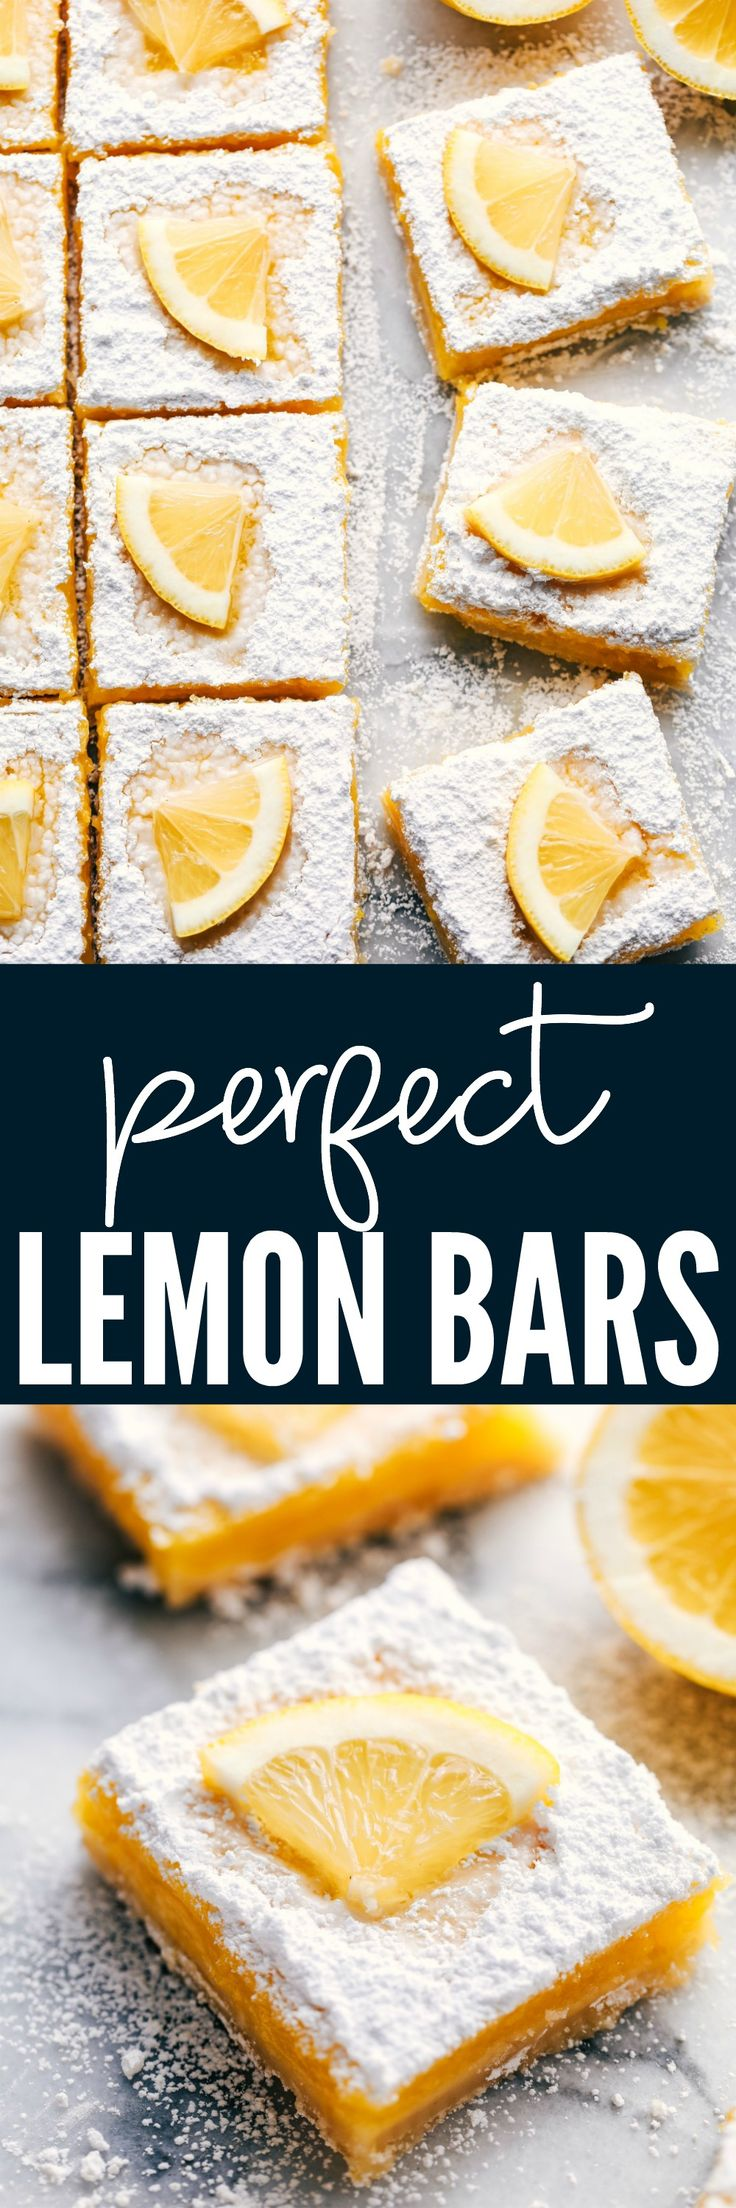 Perfect Lemon Bars at https://therecipecritic.com Perfectly baked and deliciously tangy lemon bars!